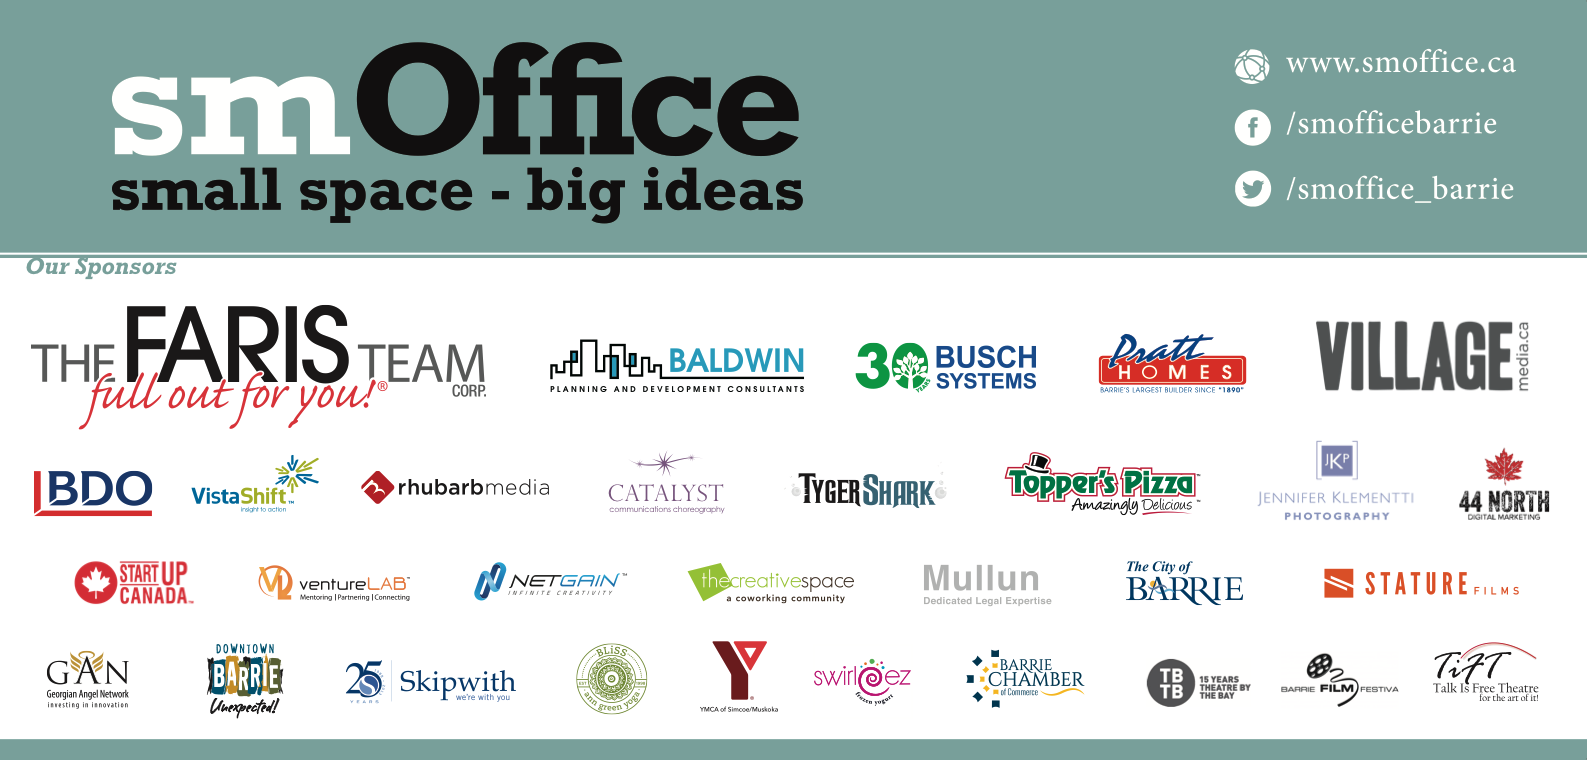 Our 2016 smOffice Sponsors